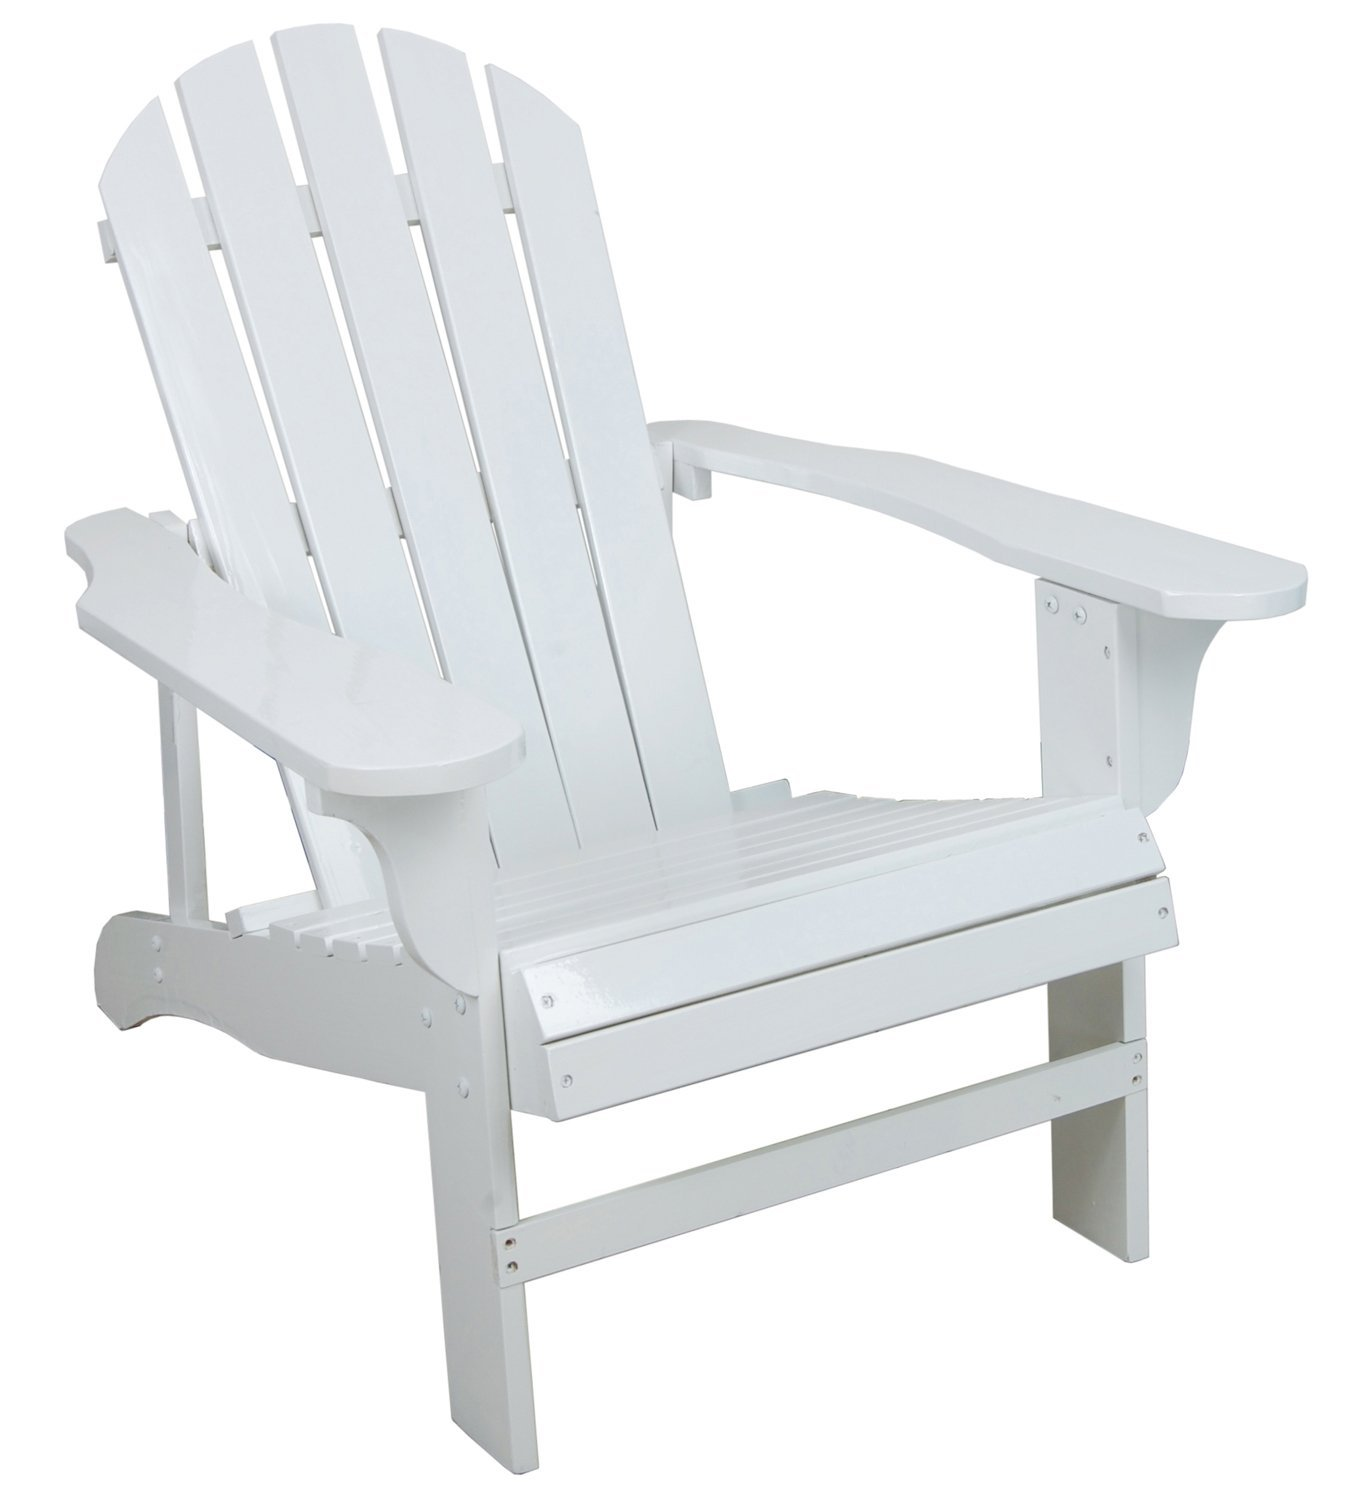 amazon.com : classic white painted wood adirondack chair : chaise lounges  cushions WHUIXMM